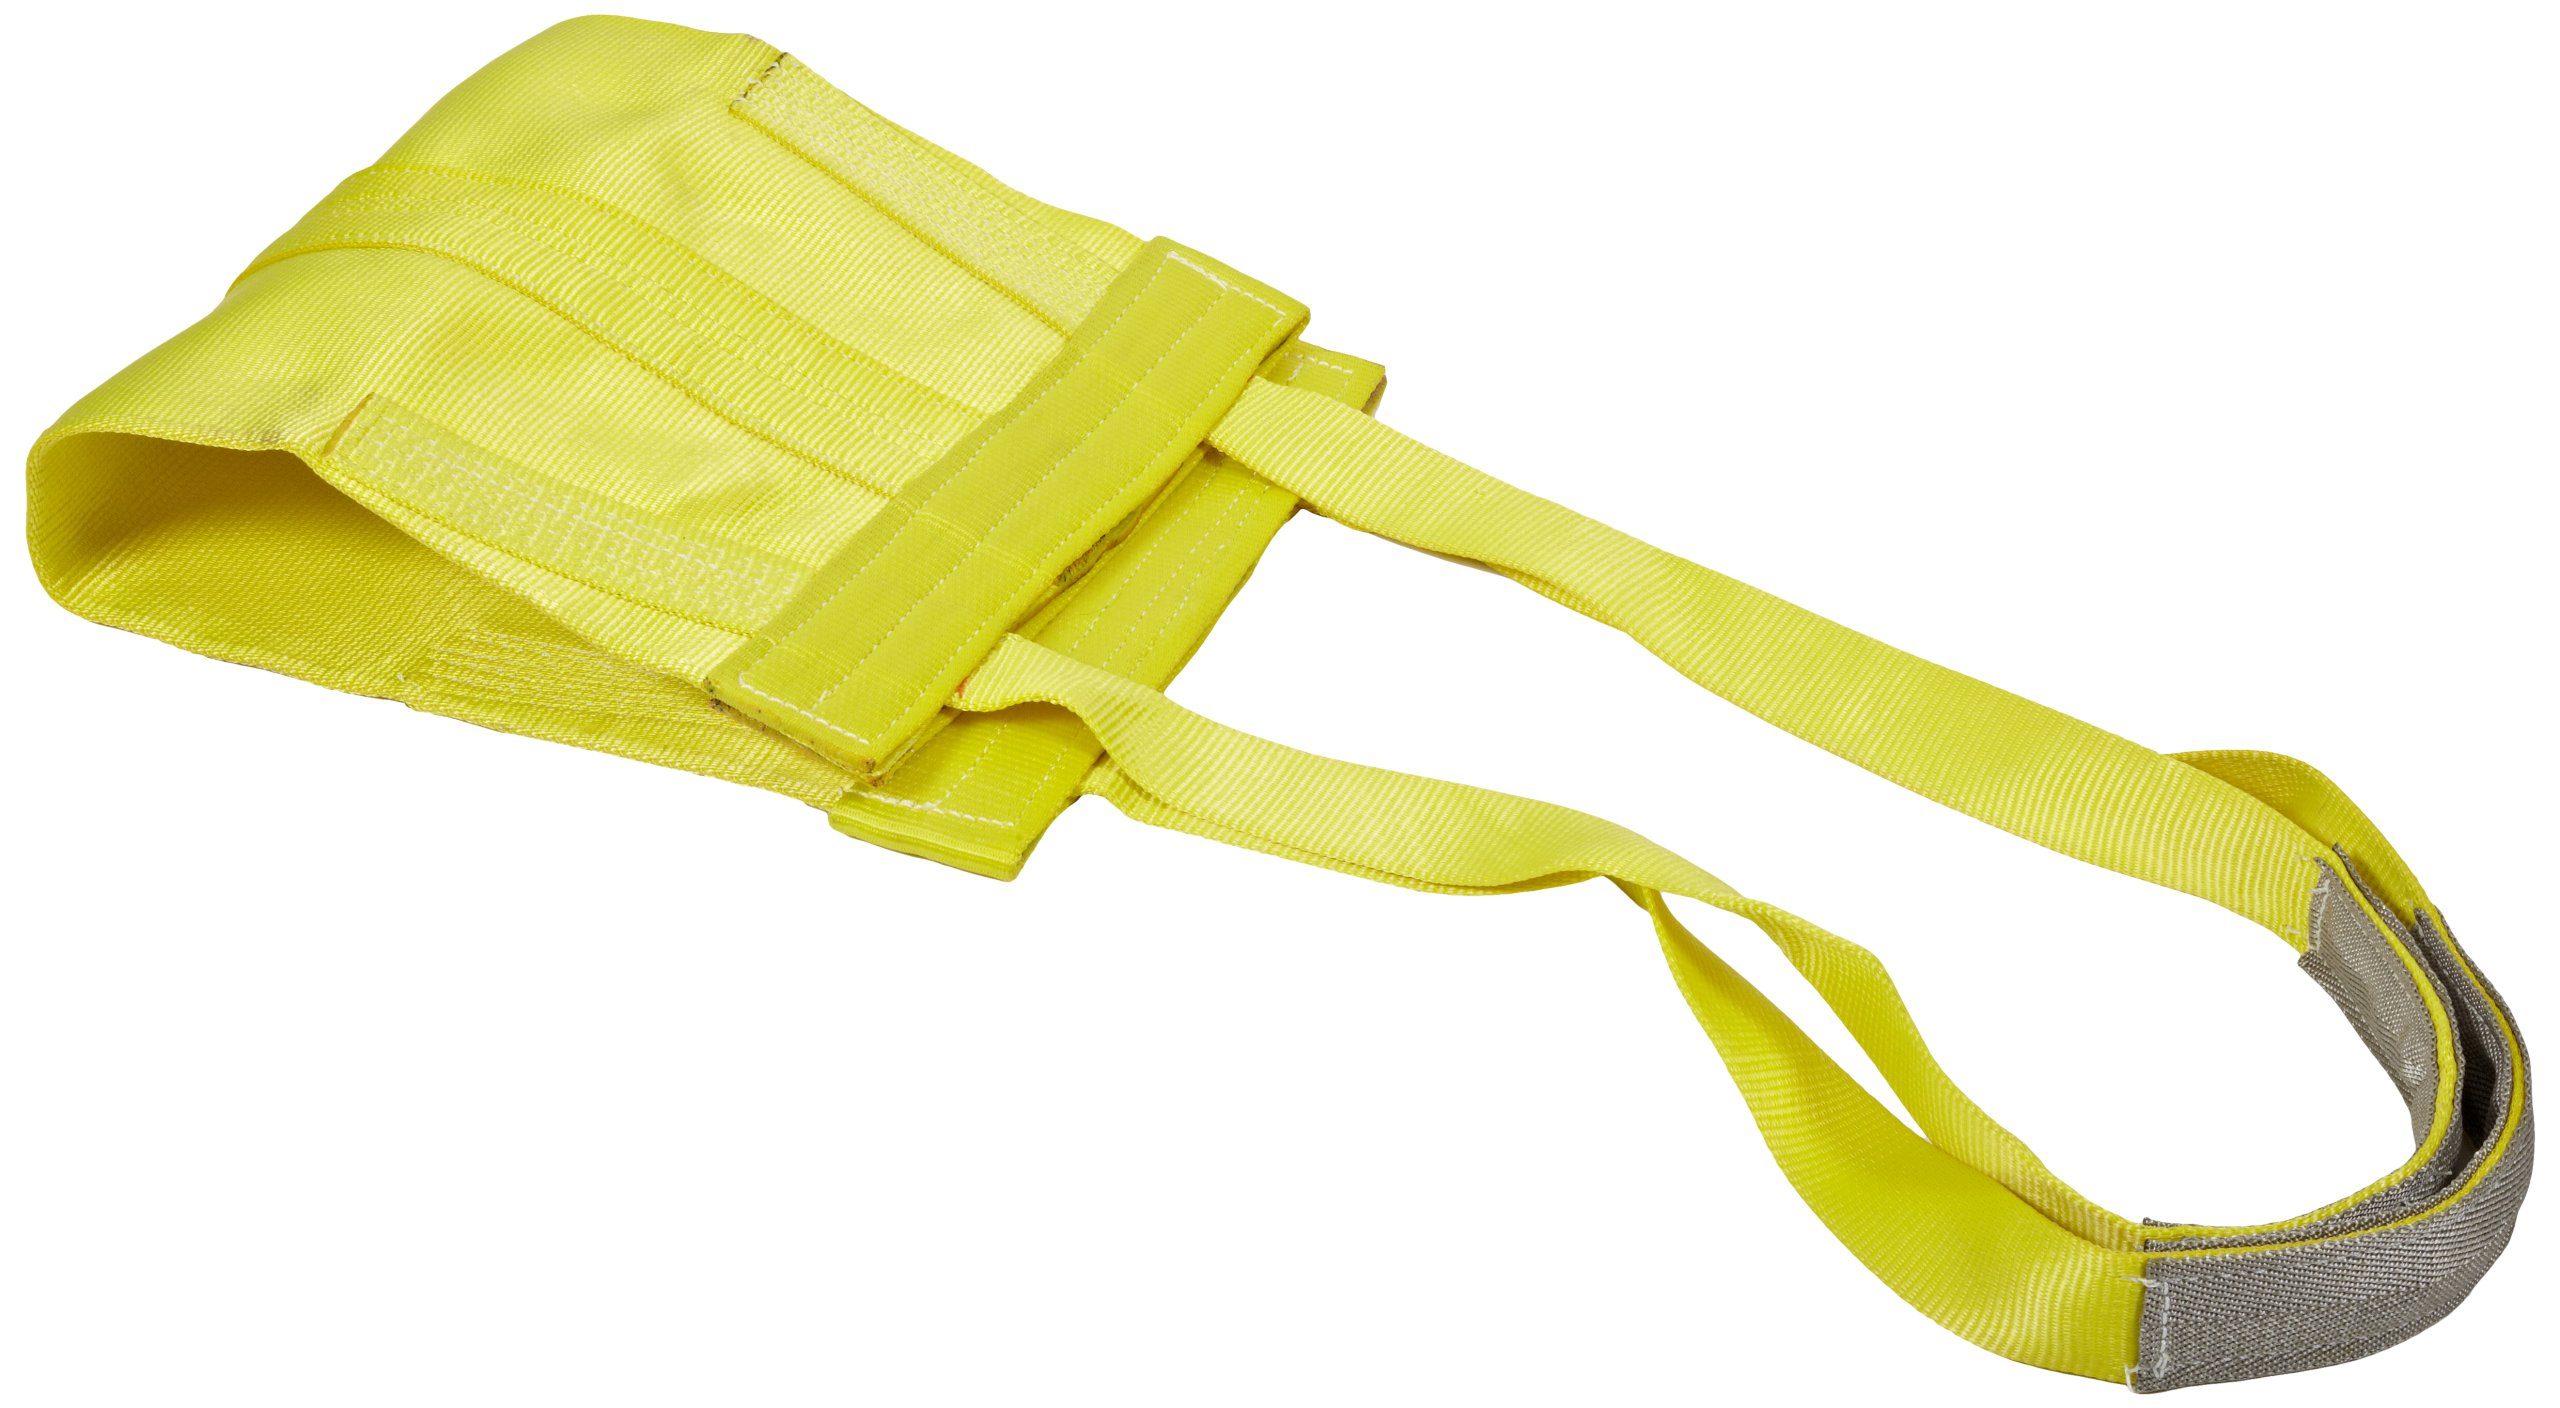 Mazzella EE2-901 Polyester Web Sling 1 Width Eye-and-Eye 6 Length 2 Ply 3200 lbs Vertical Load Capacity 6 Twist Eyes Yellow